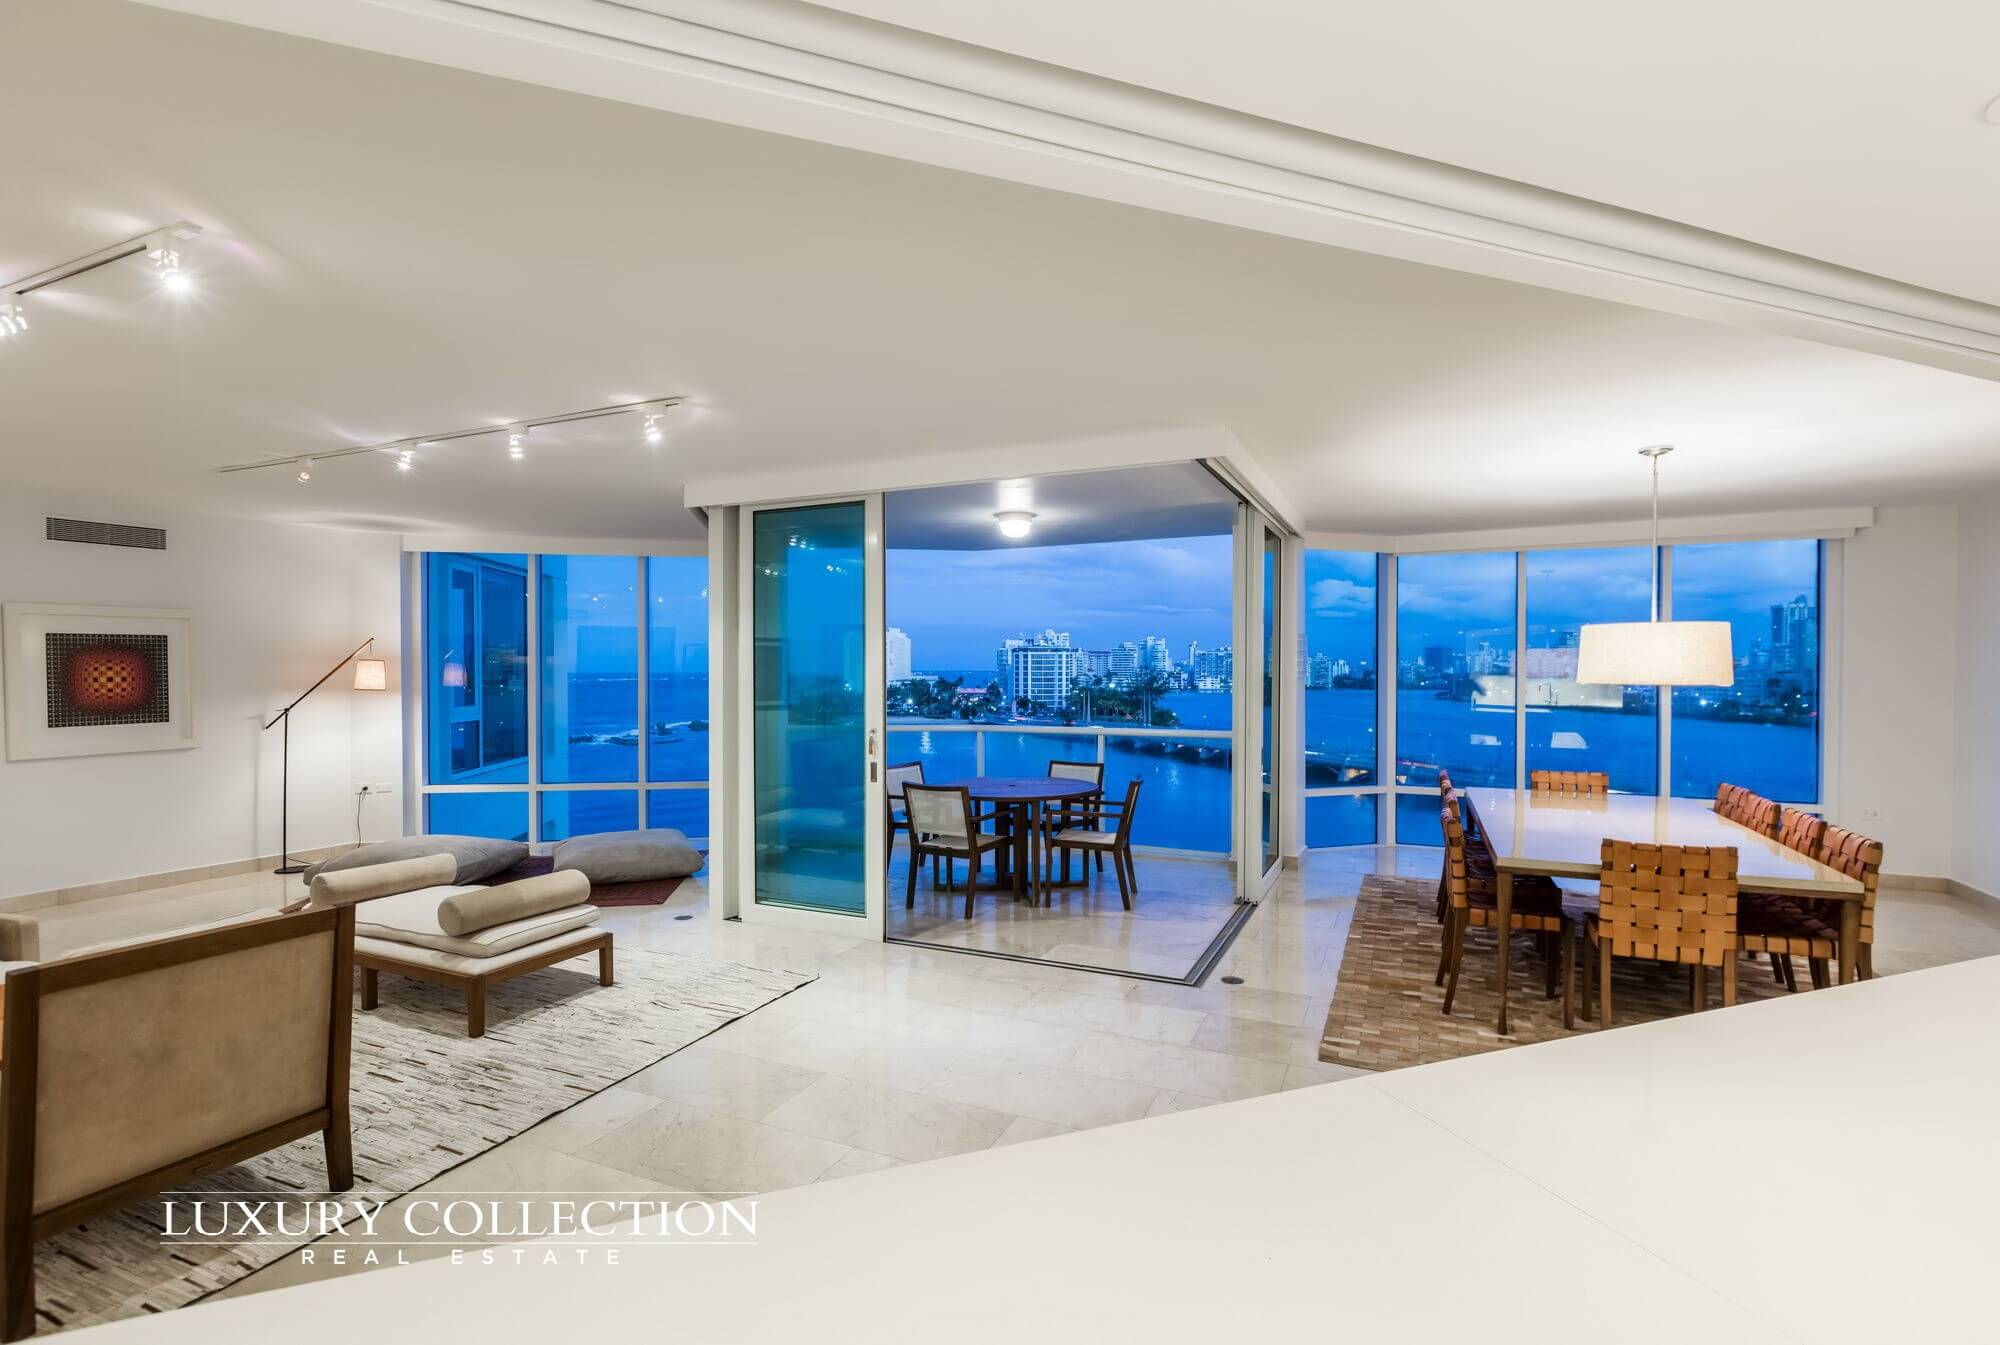 Laguna Plaza apartment for rent at Paseo Caribe Condado Puerto Rico with Atlantic ocean views and Condado lagoon and city skyline views.